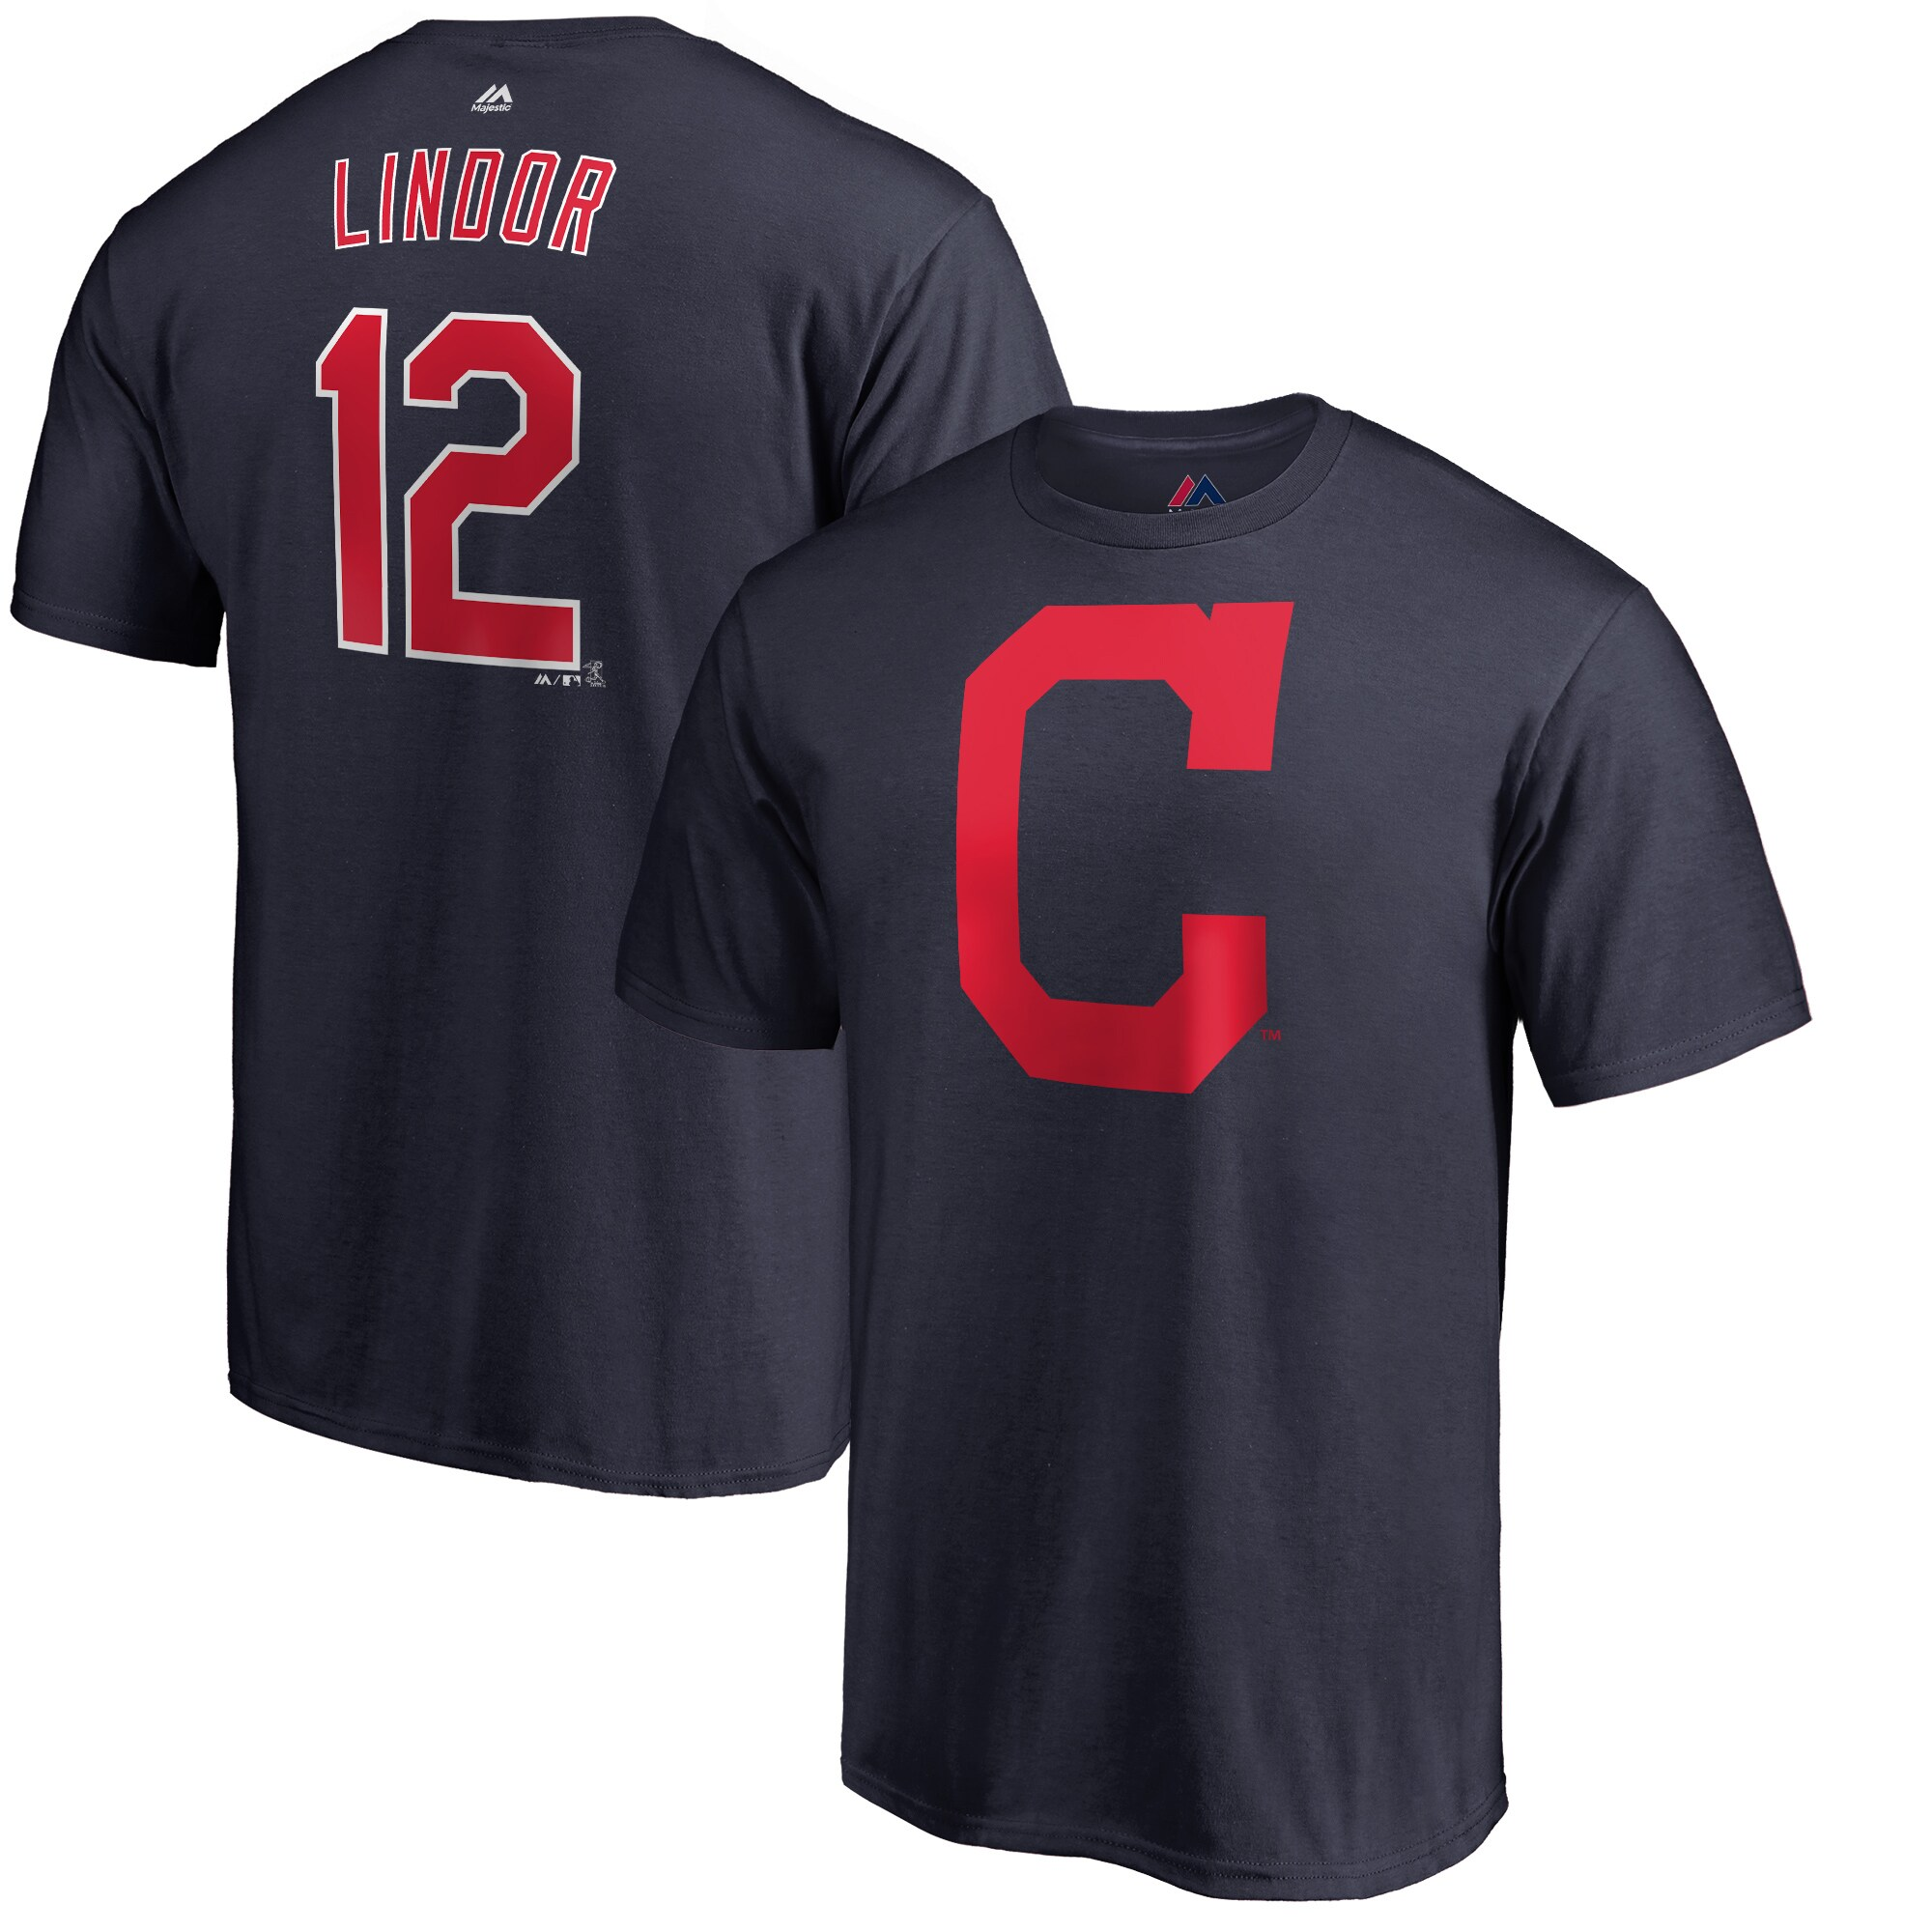 Francisco Lindor Cleveland Indians Majestic Double Play Cap Logo Name & Number T-Shirt - Navy